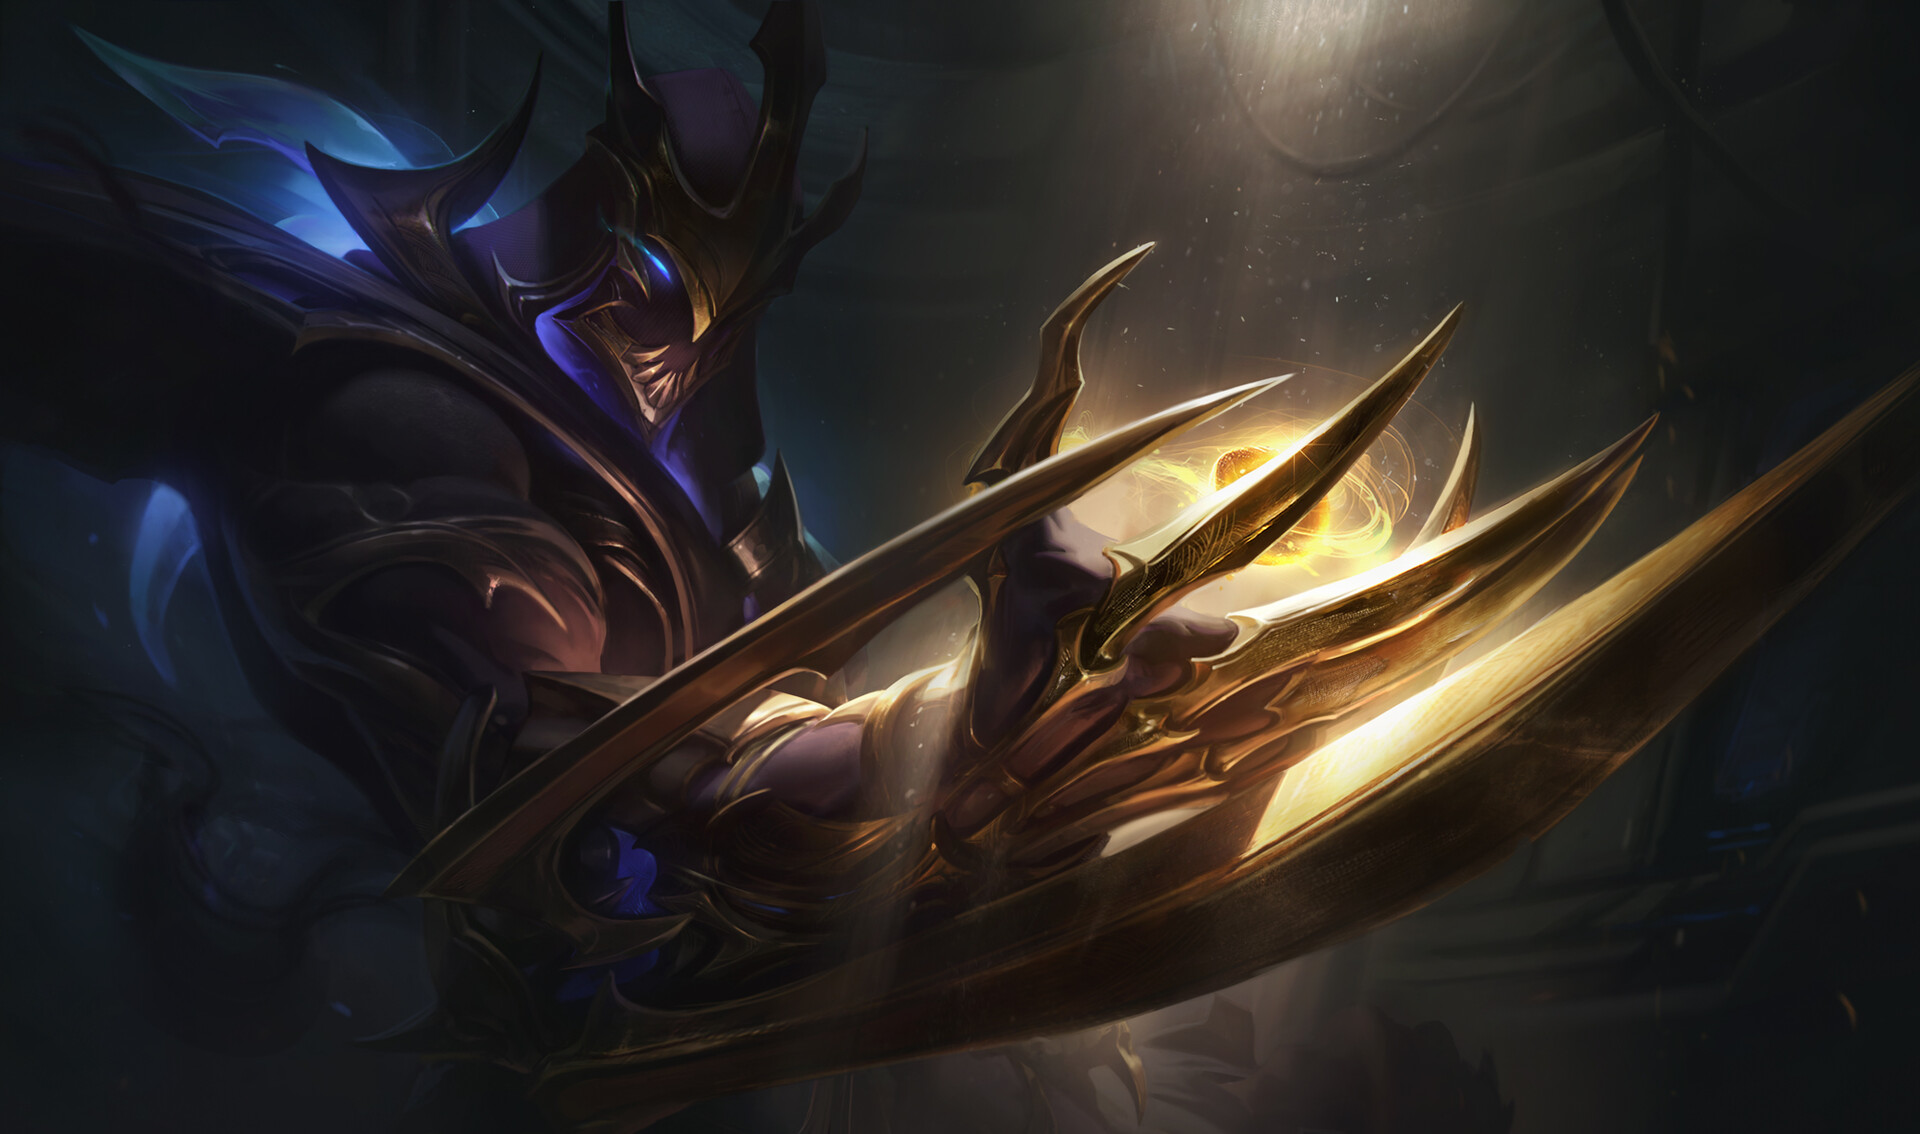 20 Splash Art Zed Mask Pictures And Ideas On Weric